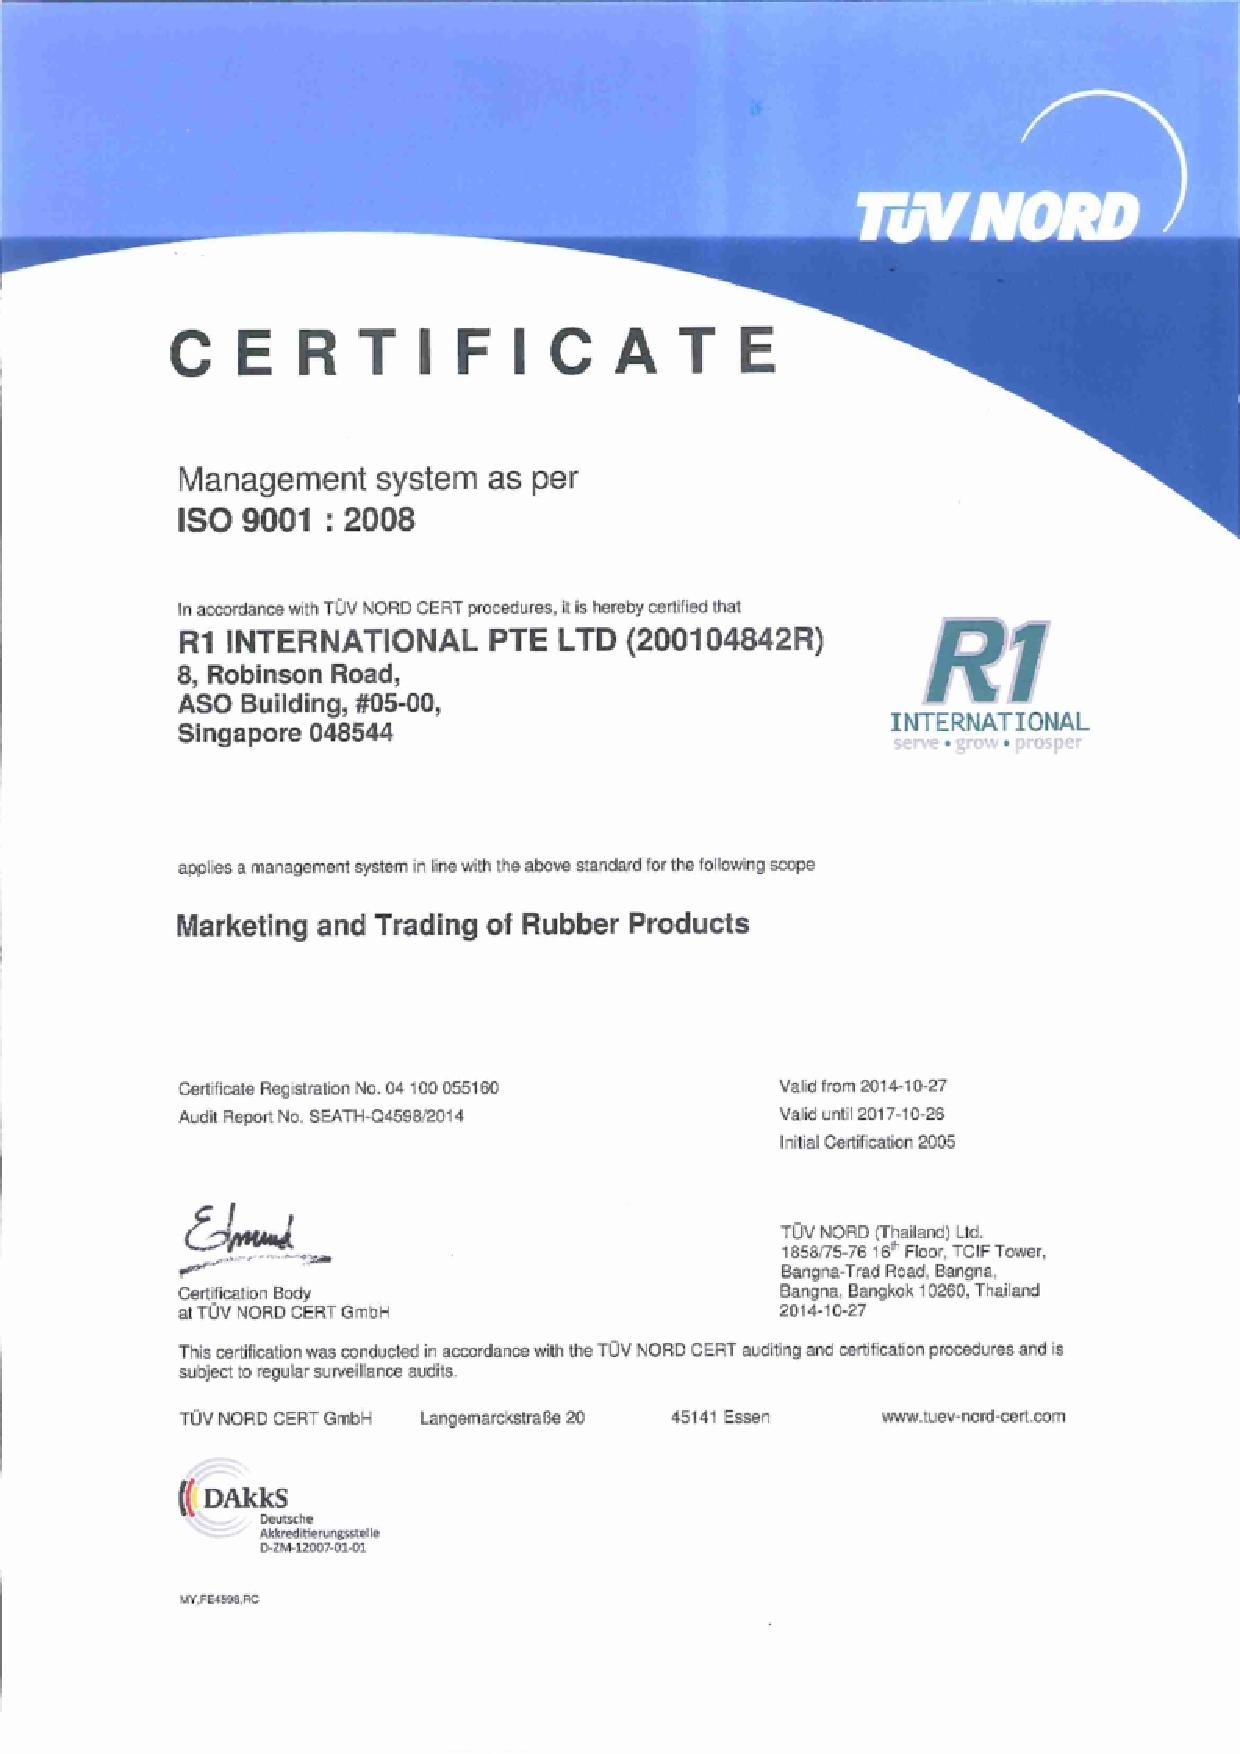 ISO Certificate_ISO 9001 2008 from 27-10-2014 to 26-10-2017-page-001